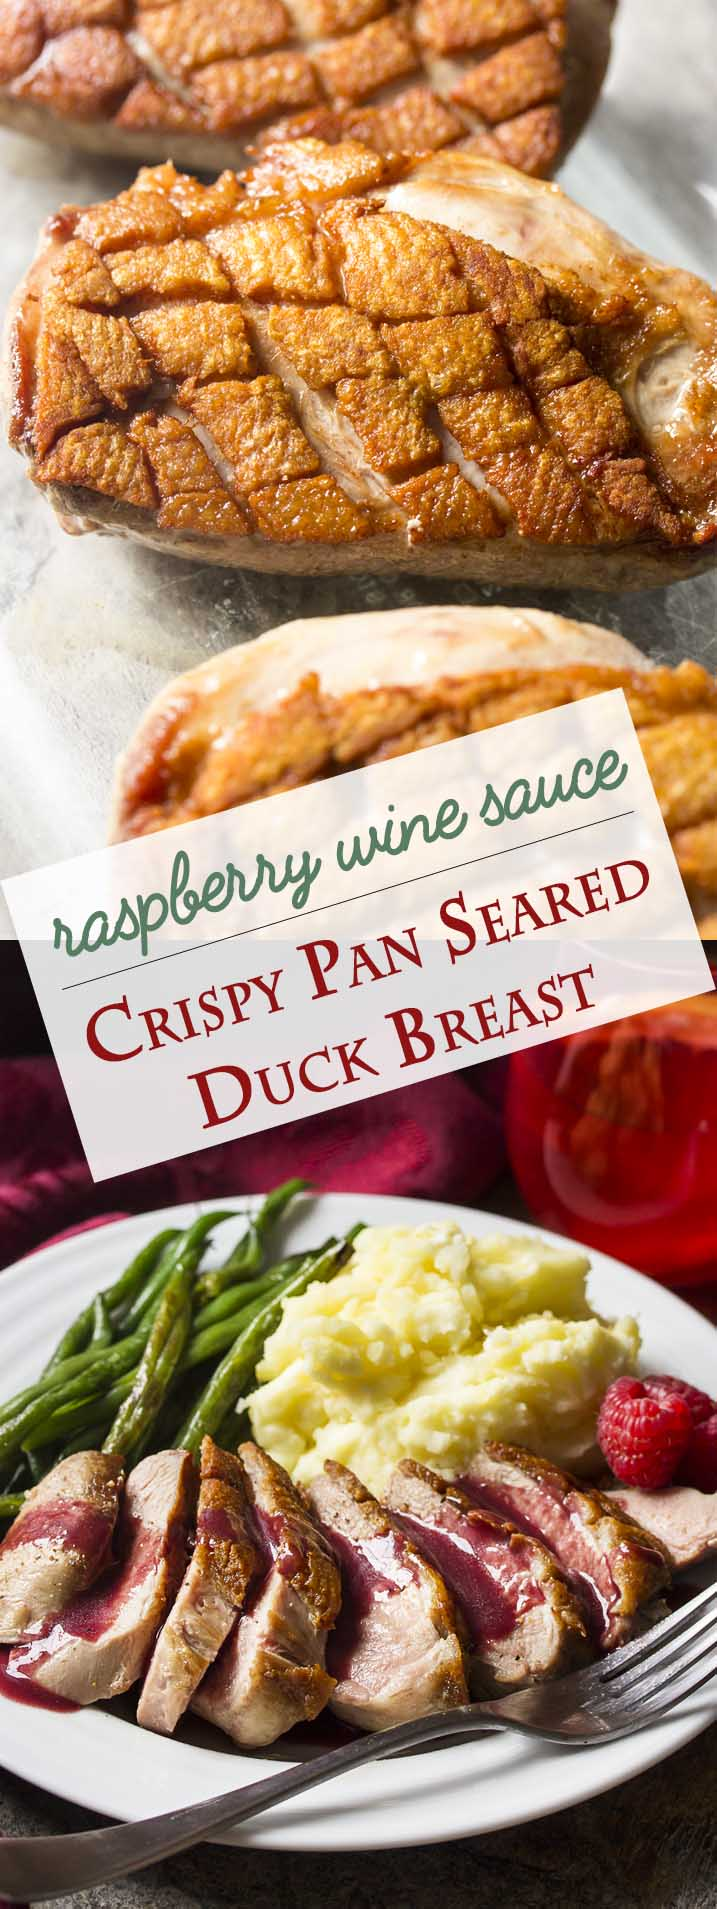 Pan seared duck breast cooked until the skin is golden brown and crispy and then topped with a sweet and spicy make ahead sauce of red wine, port, raspberries, and a little bit of honey. Great for date night, dinner parties, or a romantic Valentine's day meal. | justalittlebitofbacon.com #duck #datenight #datenightideas #valentinesday #raspberry #dinnerrecipes